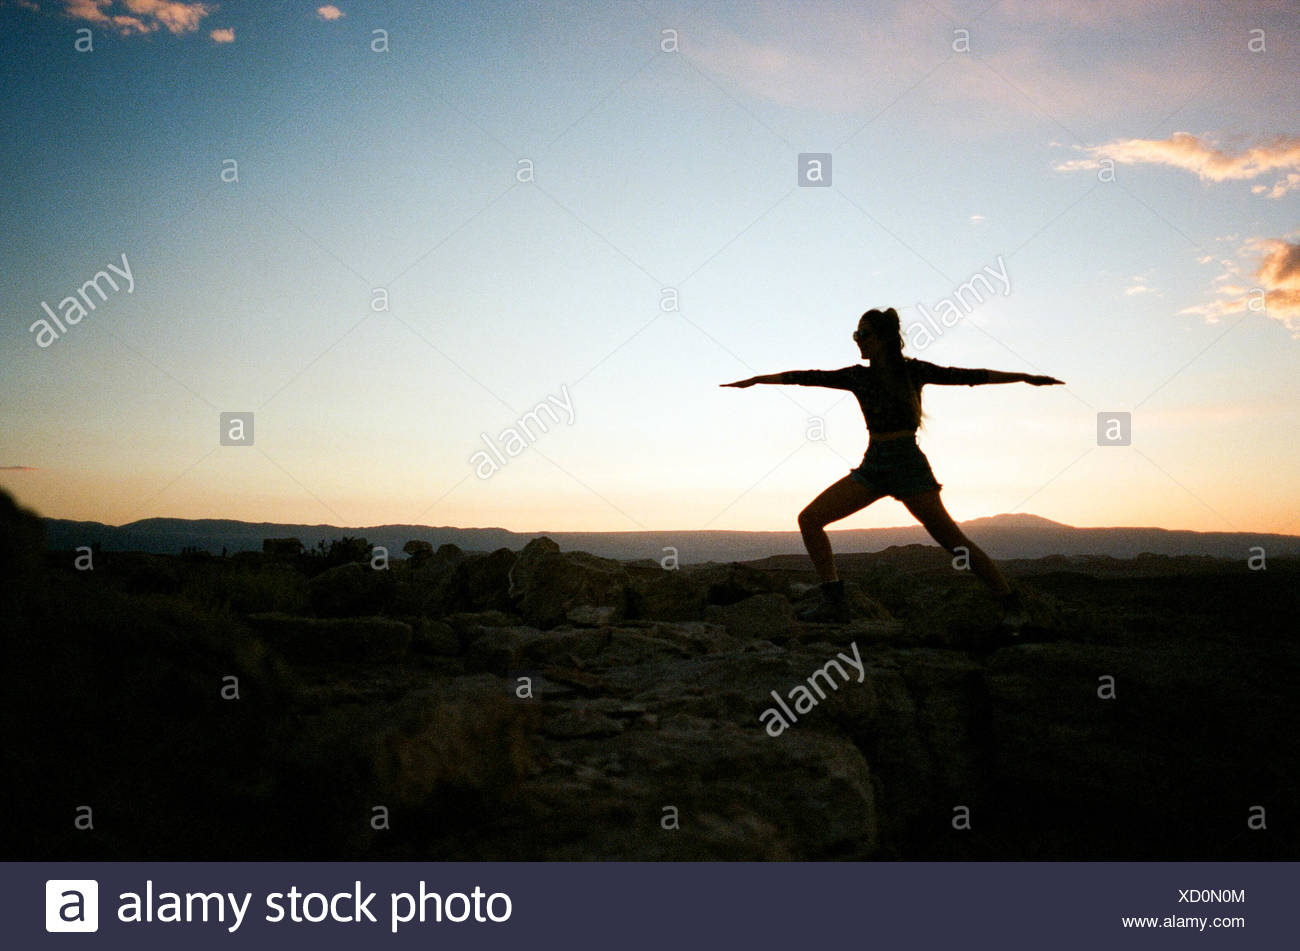 Silhouette of woman in yoga pose - Stock Image